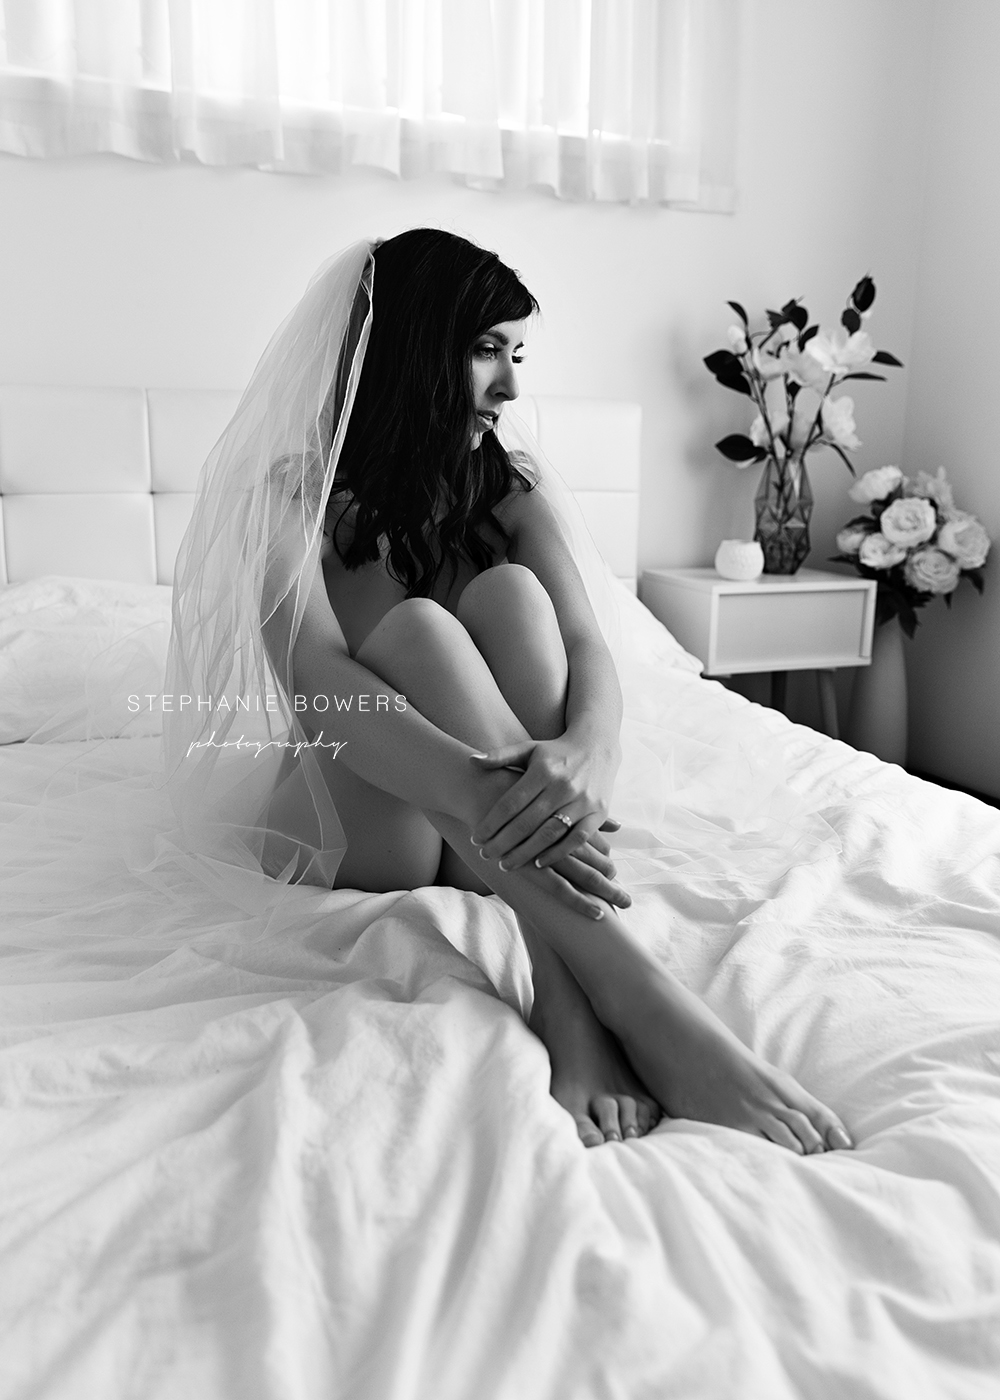 4d2c2-ChristyBoudoir_10.jpg